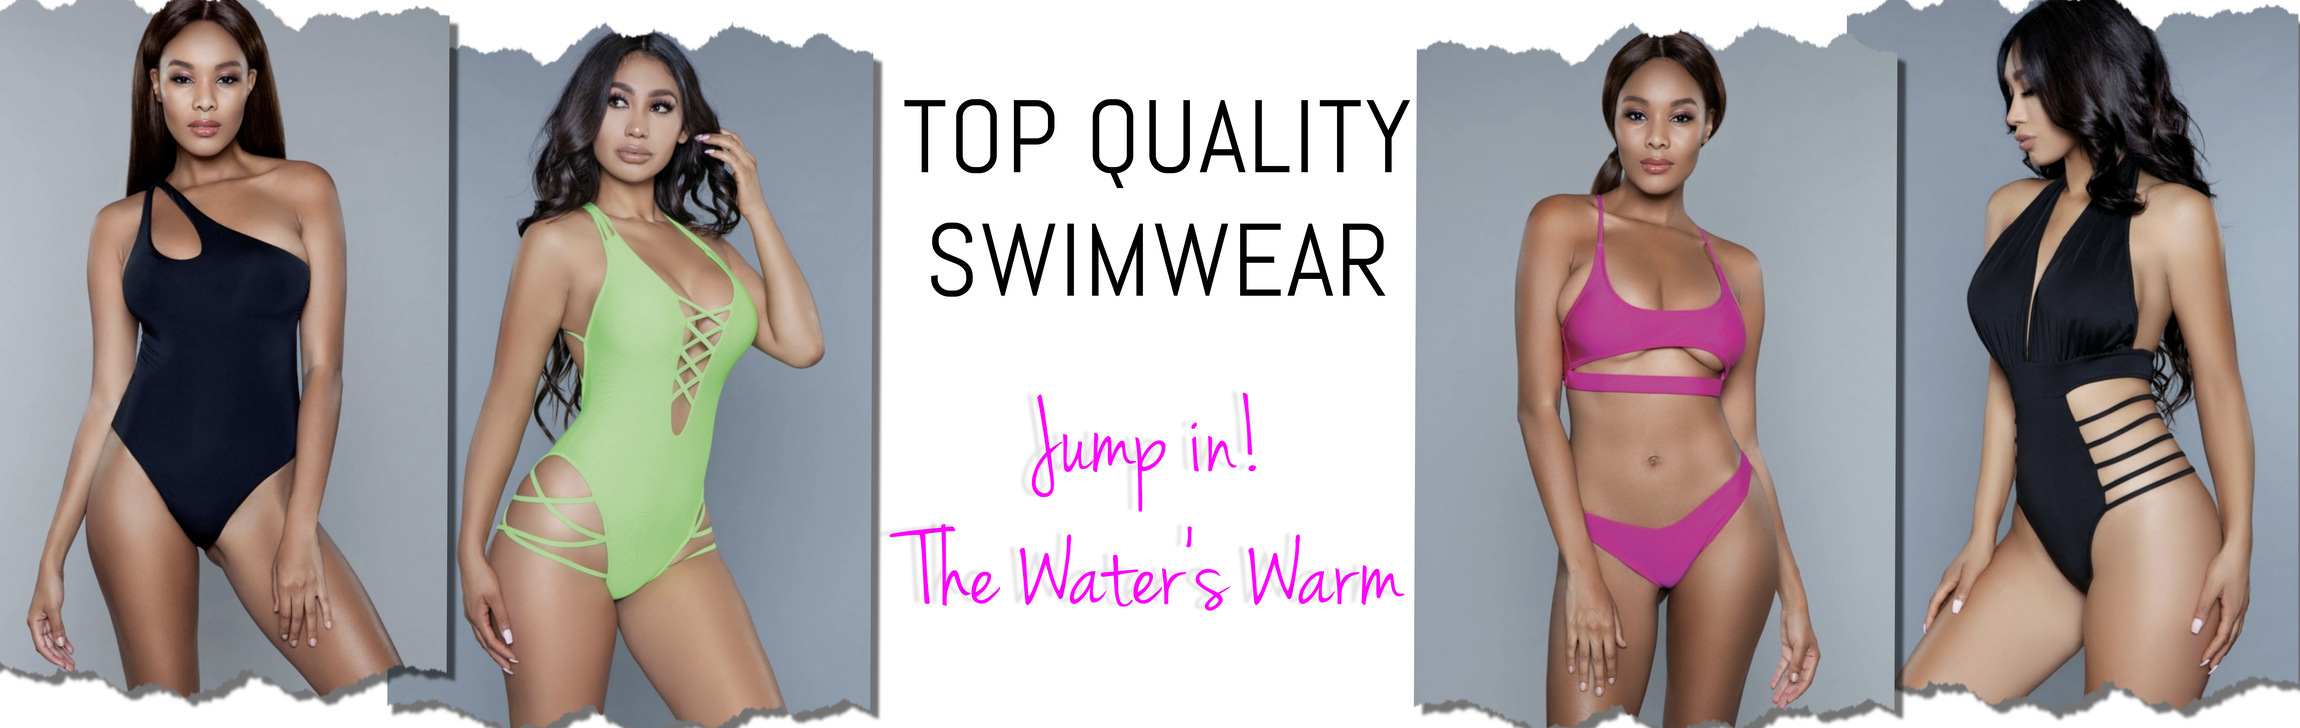 Wholesale Lingerie, Wholesale Swimwear, Wholesale Sleepwear, Wholesale Shapewear